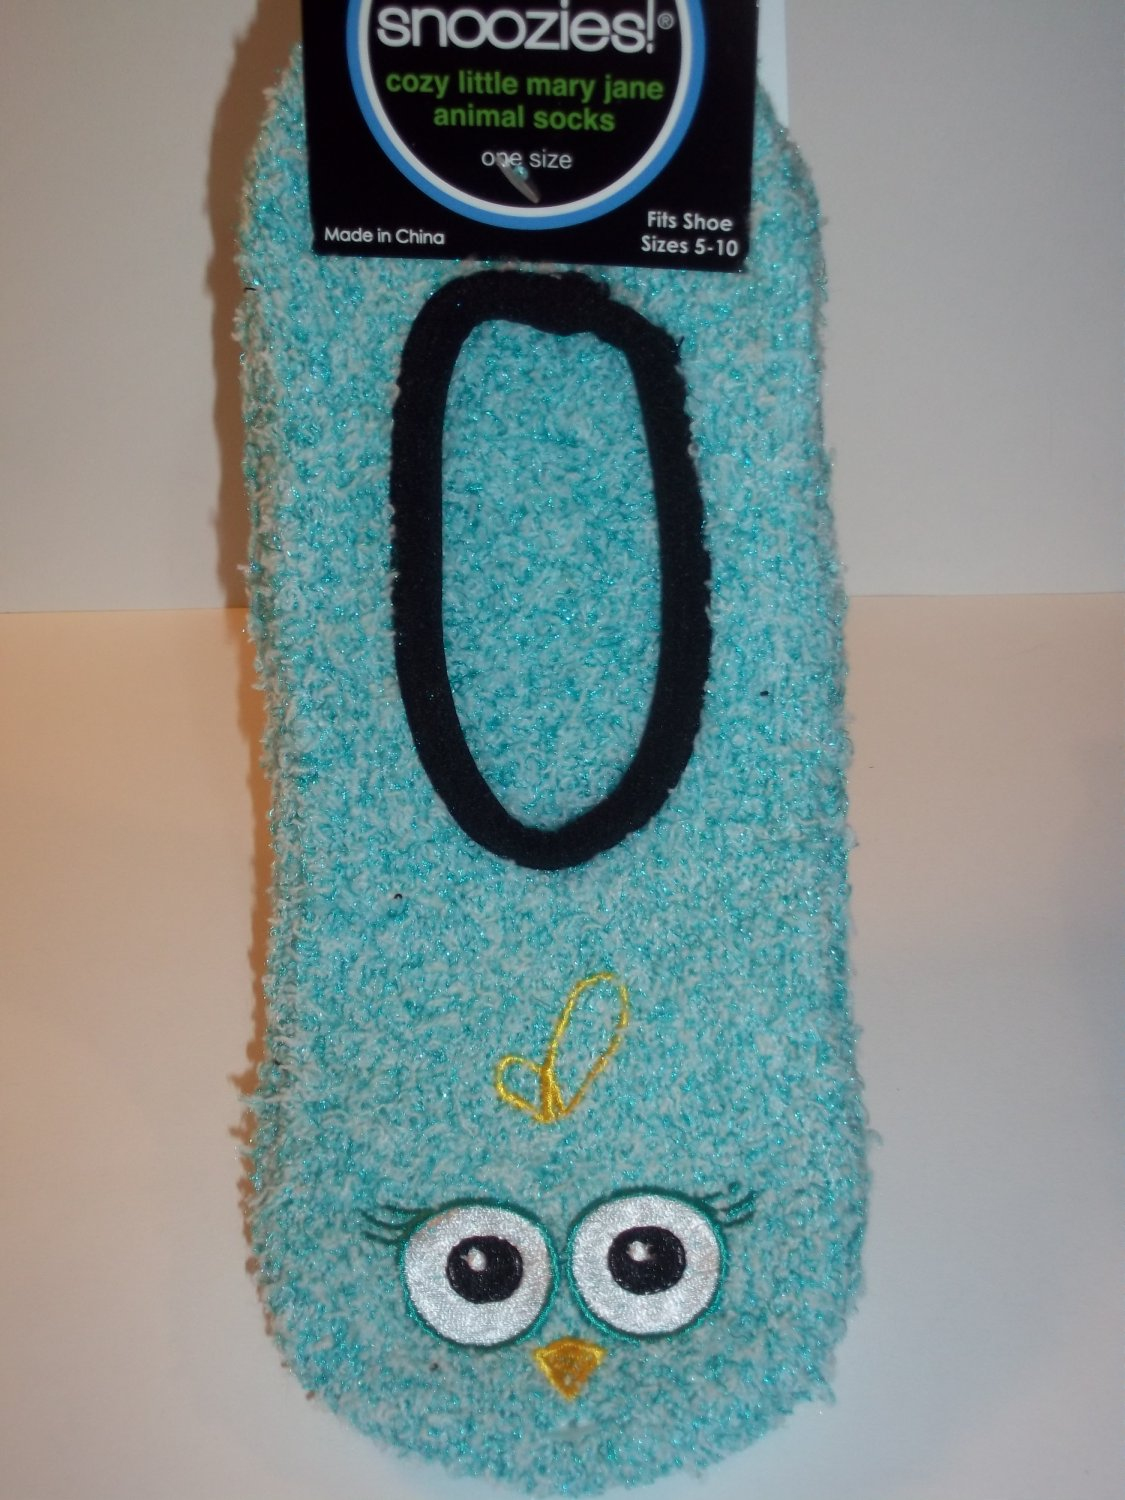 Snoozies Mary Jane Animal Socks - Blue OWL Pattern - Women's Size 5-10